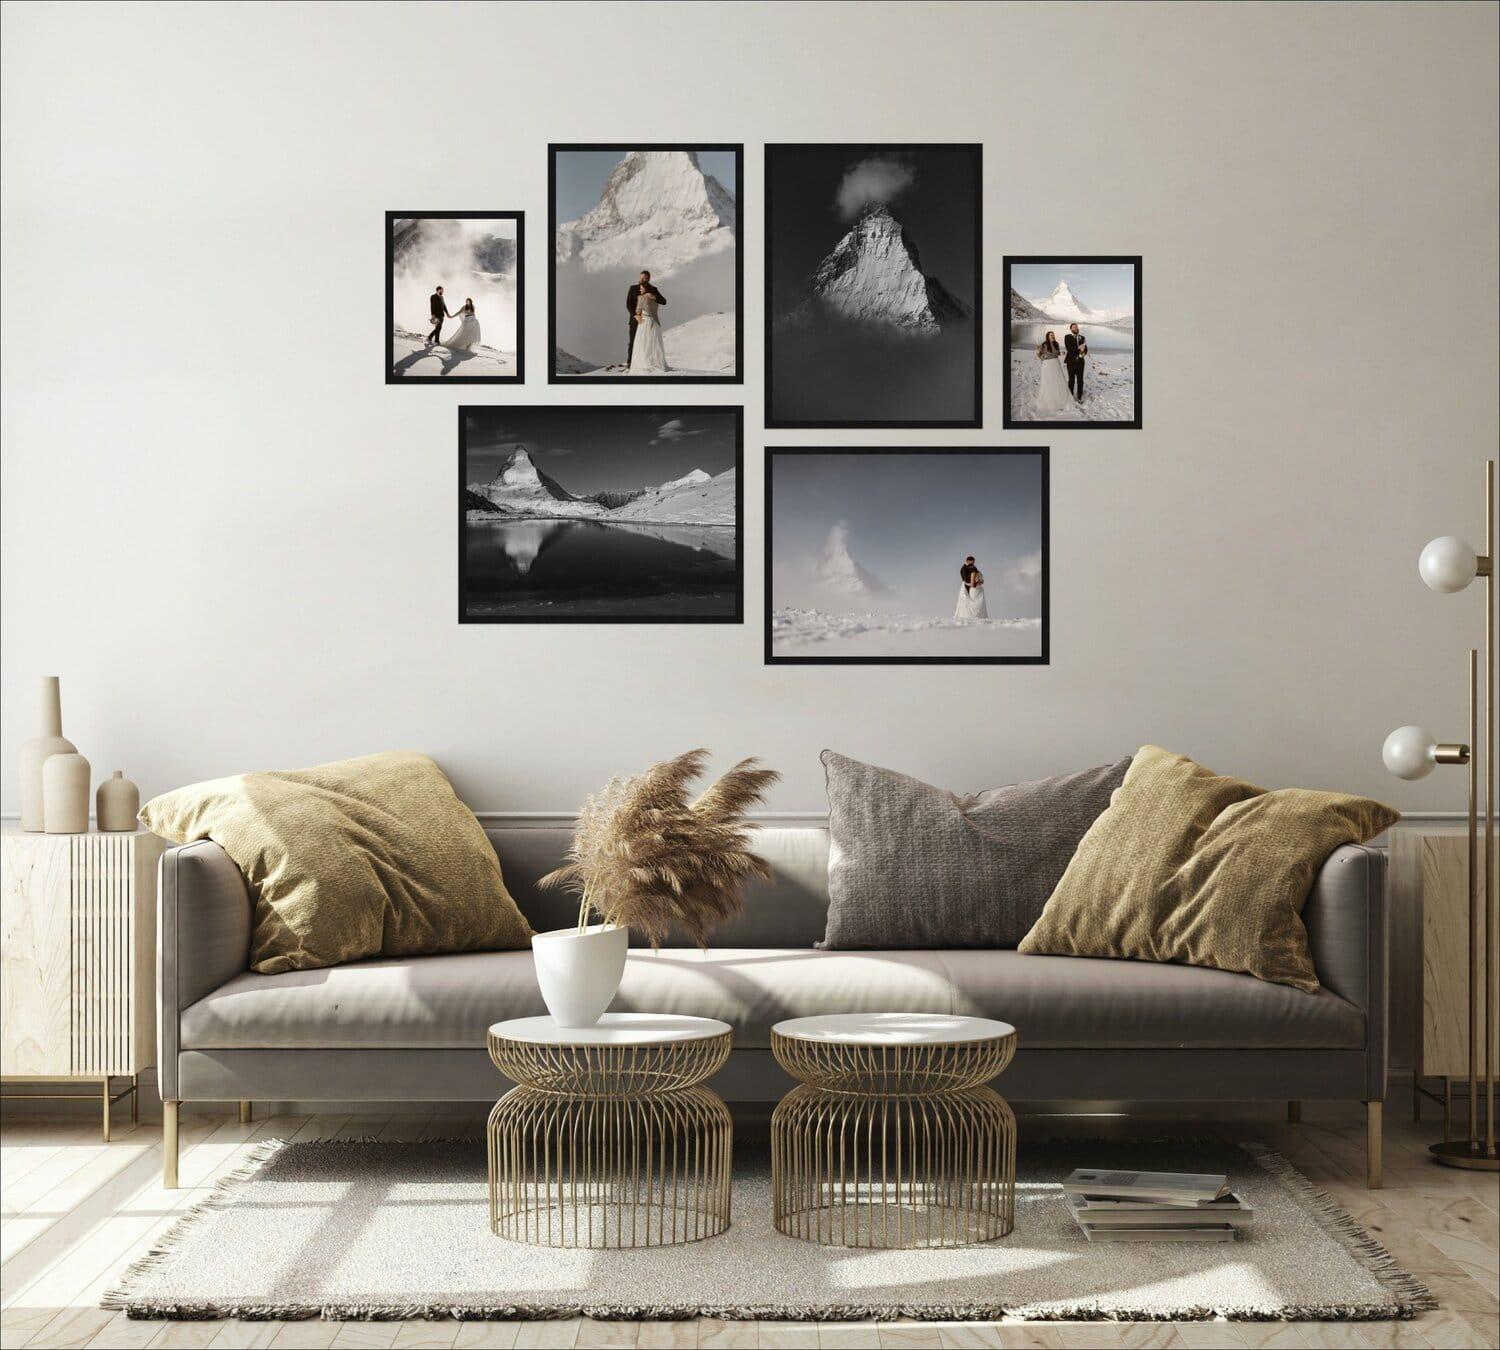 A living room with a collage of six wedding photos hanging above a couch.